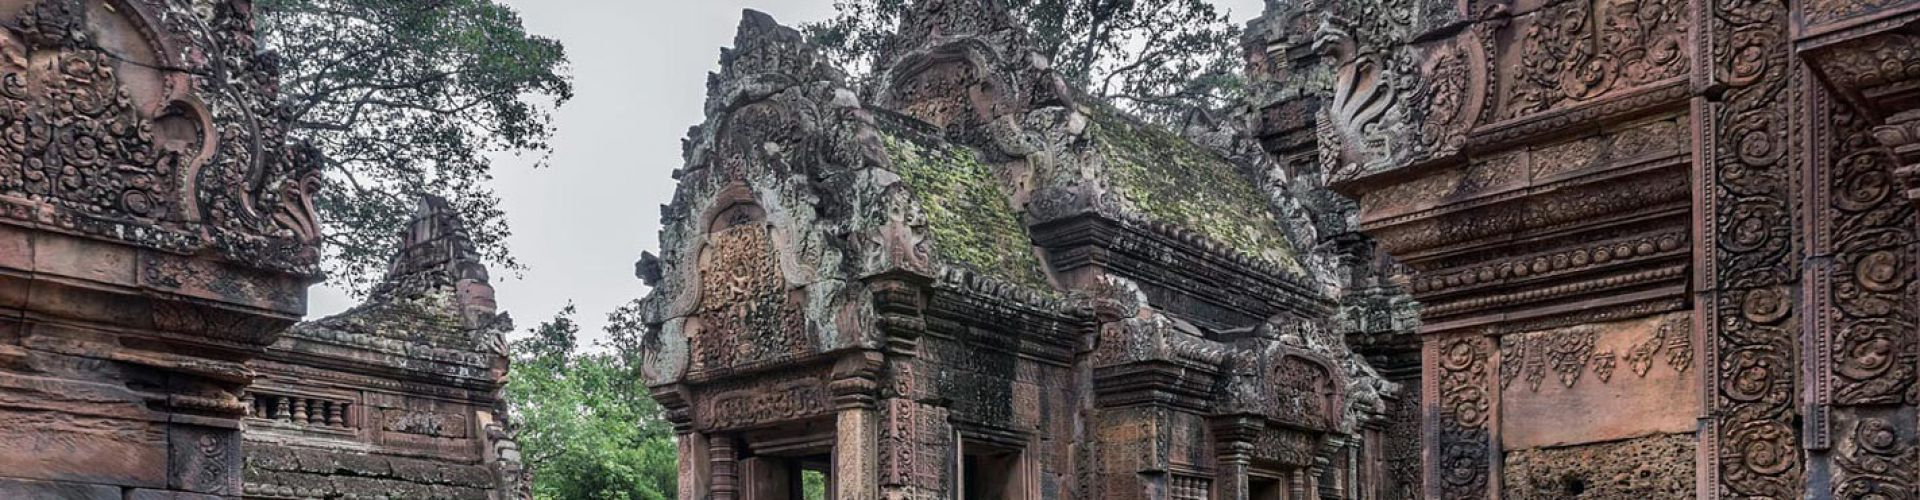 Destinations in Banteay Meanchey